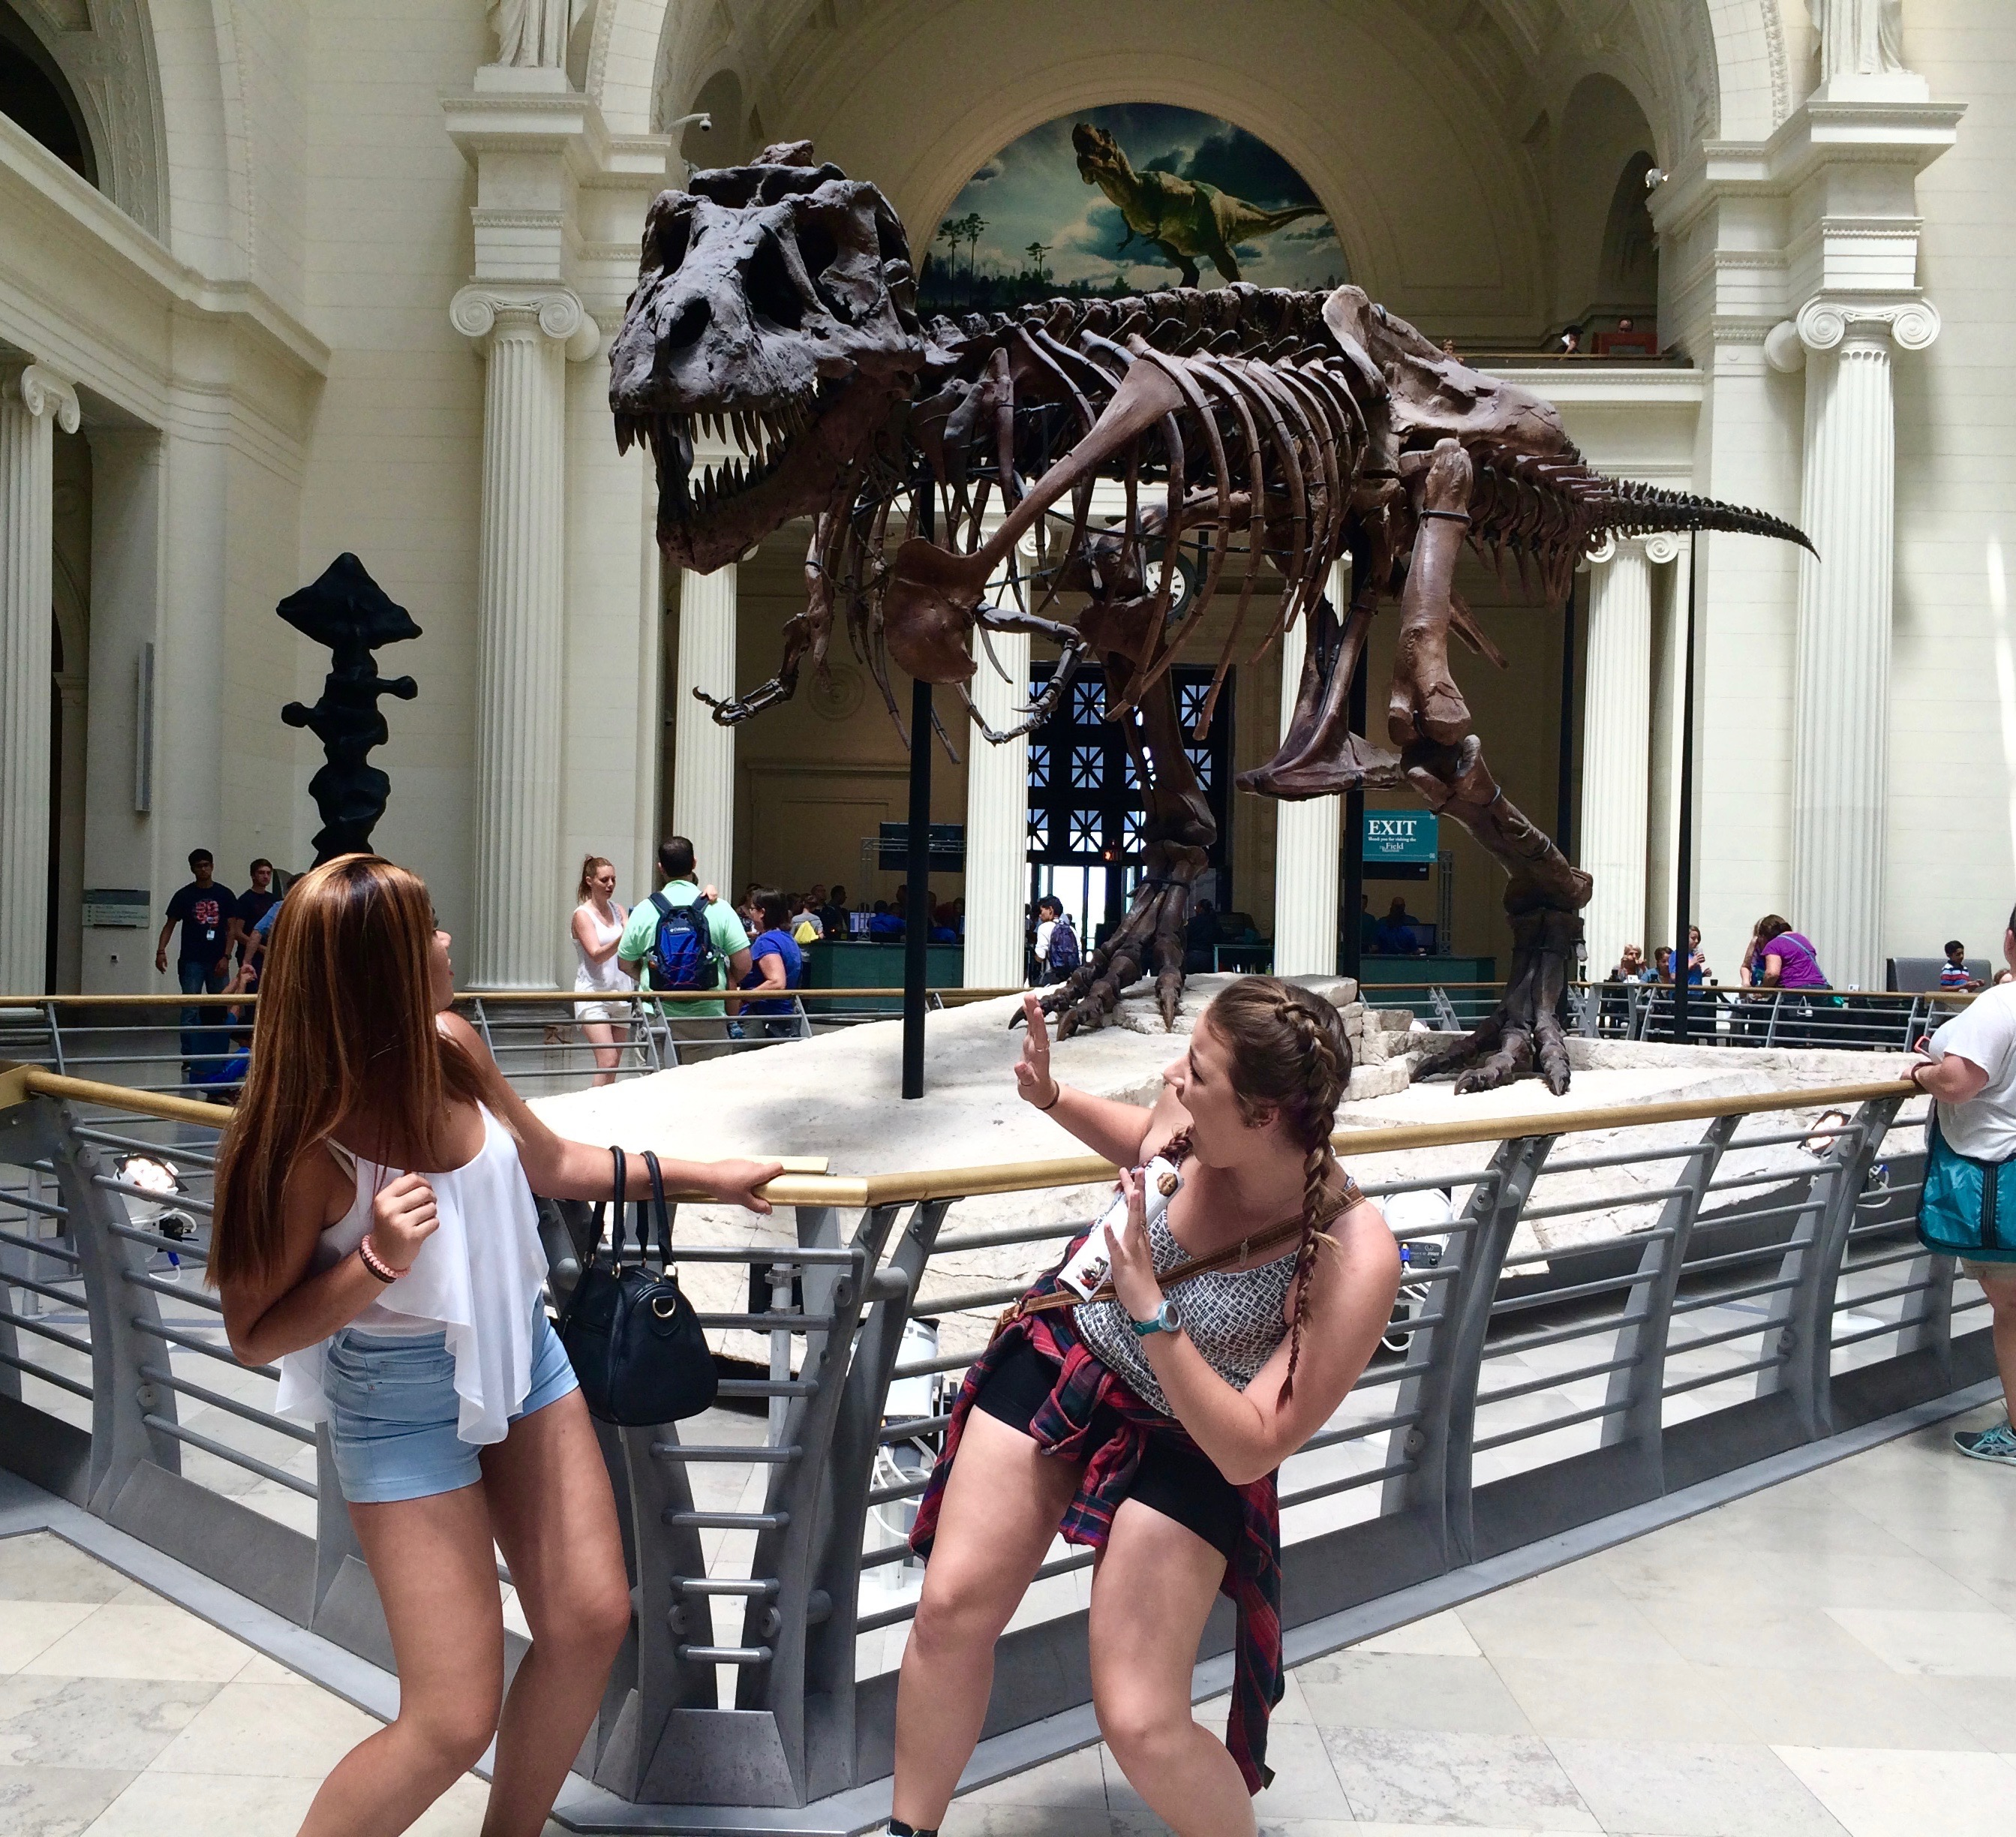 And what's a trip to Chicago without a visit to the field museum...